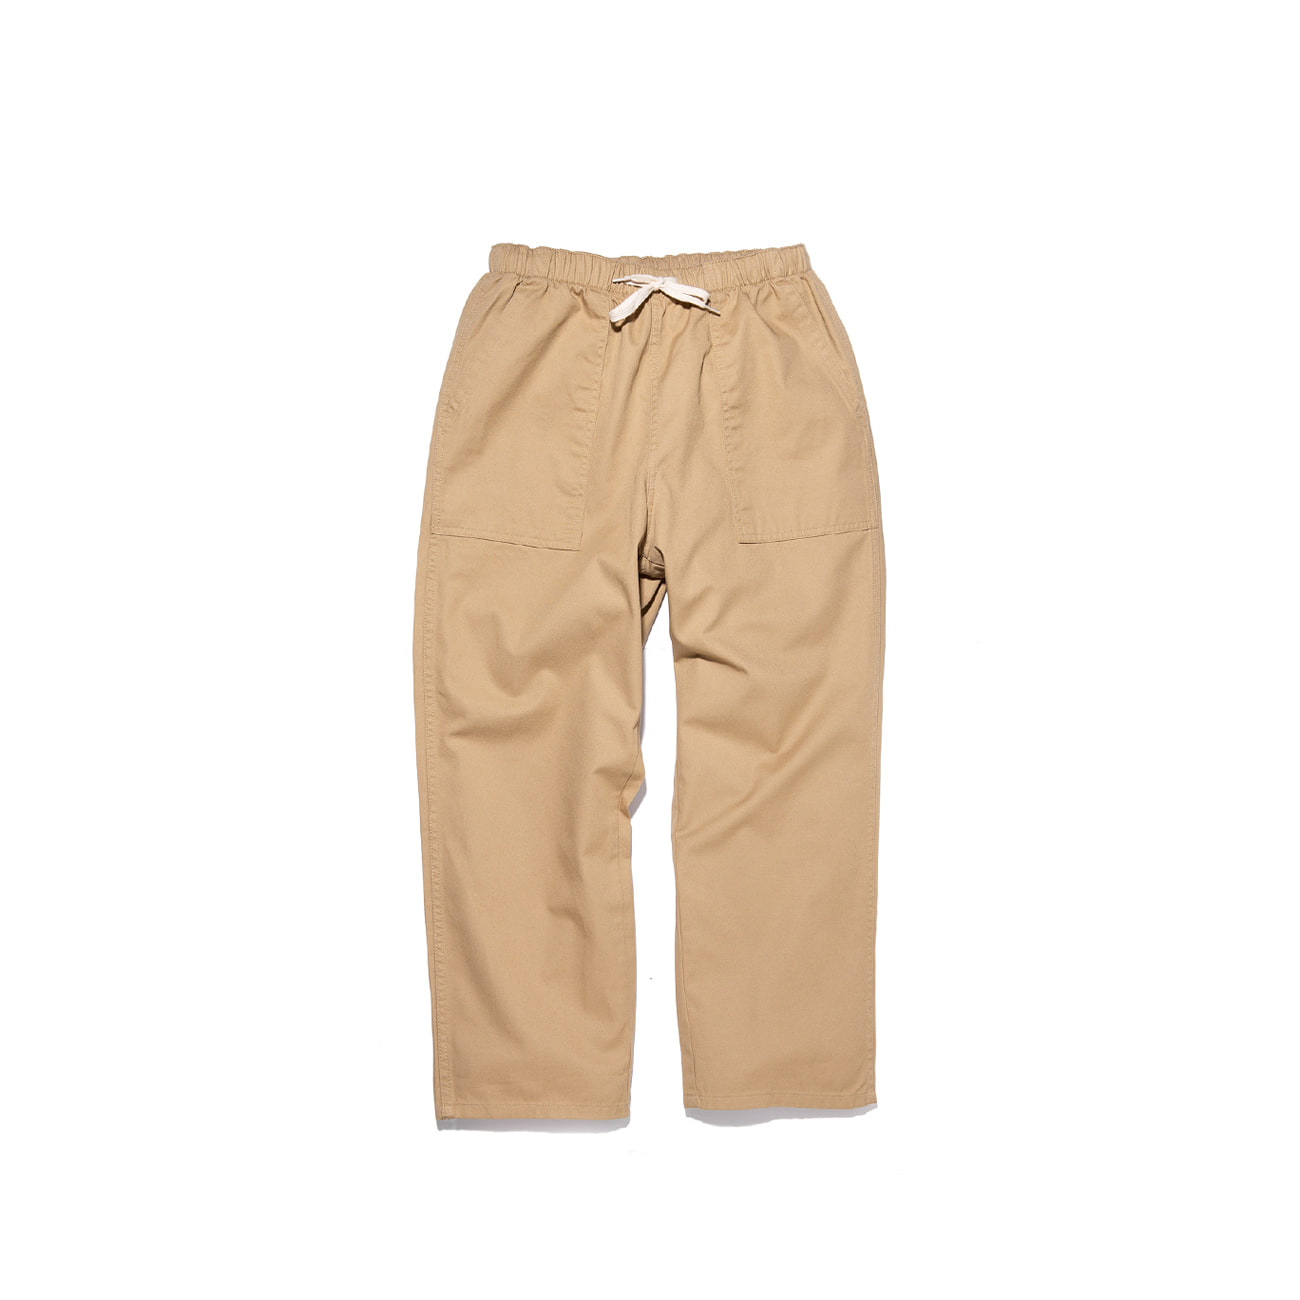 Ocean Fatigue Pants